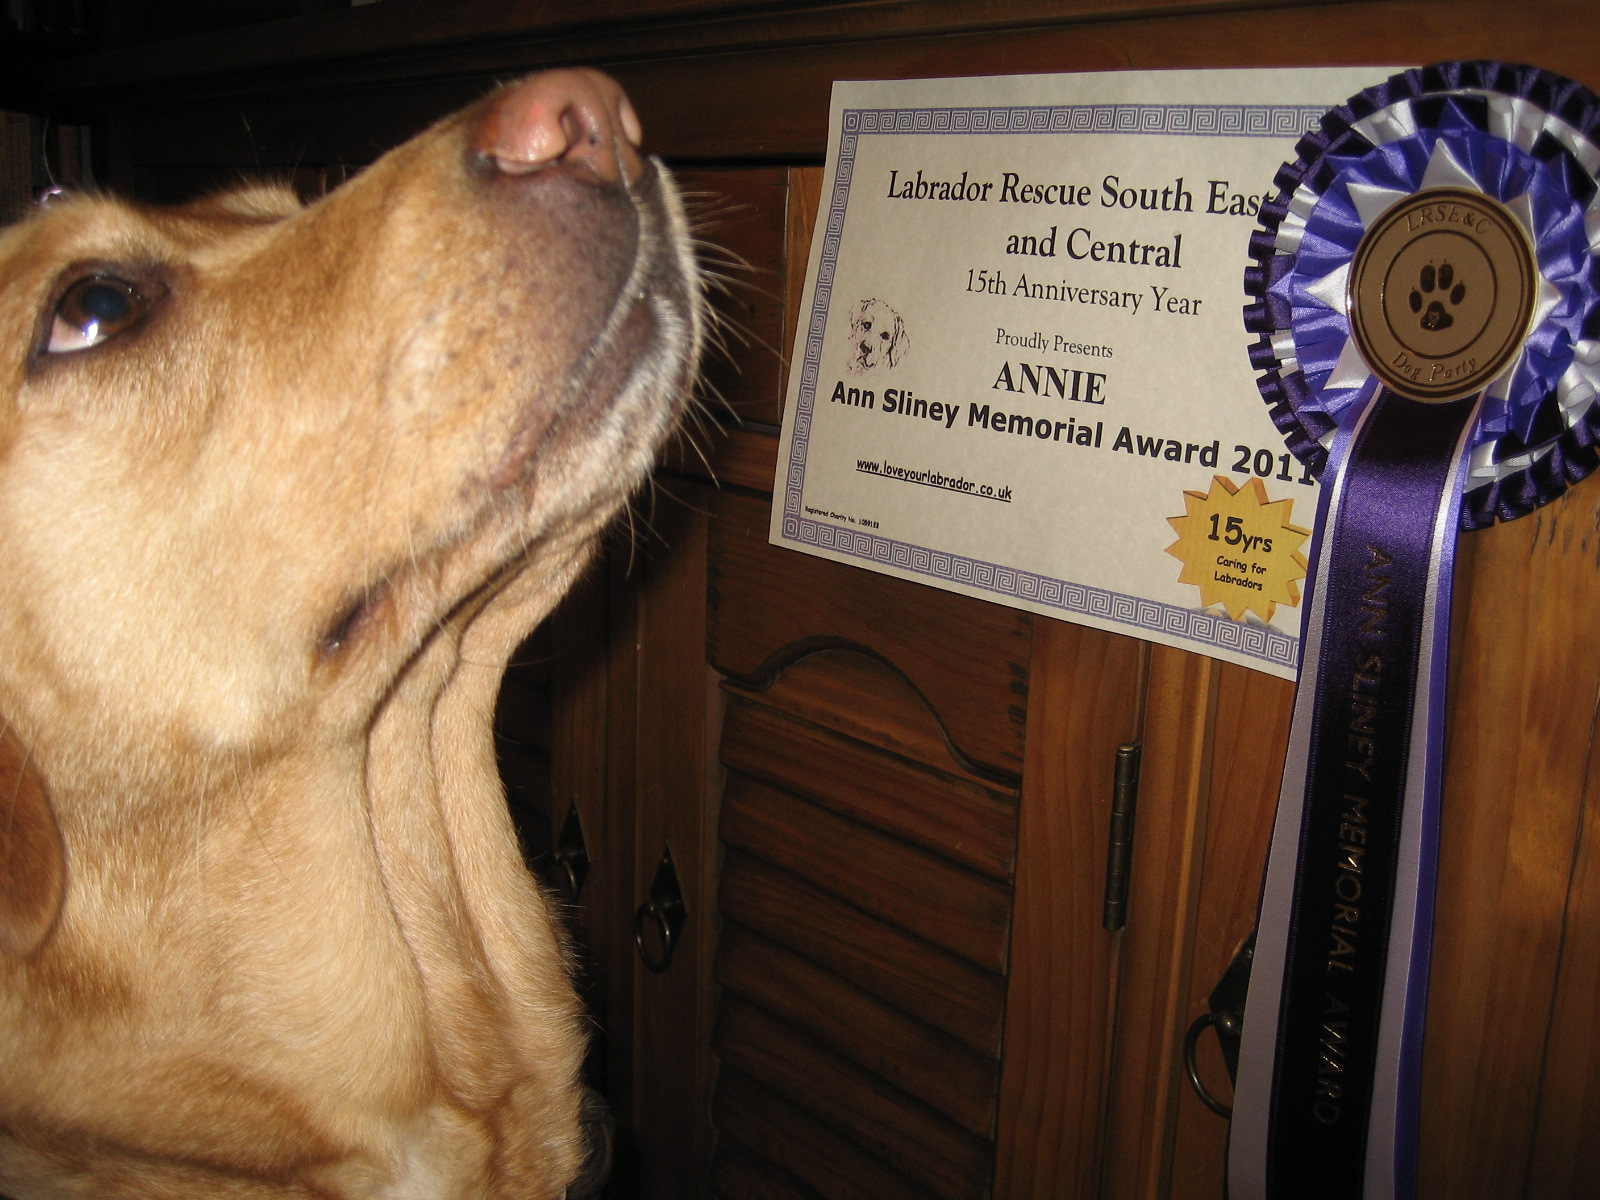 Annie the Labrador with her certificate and rosette